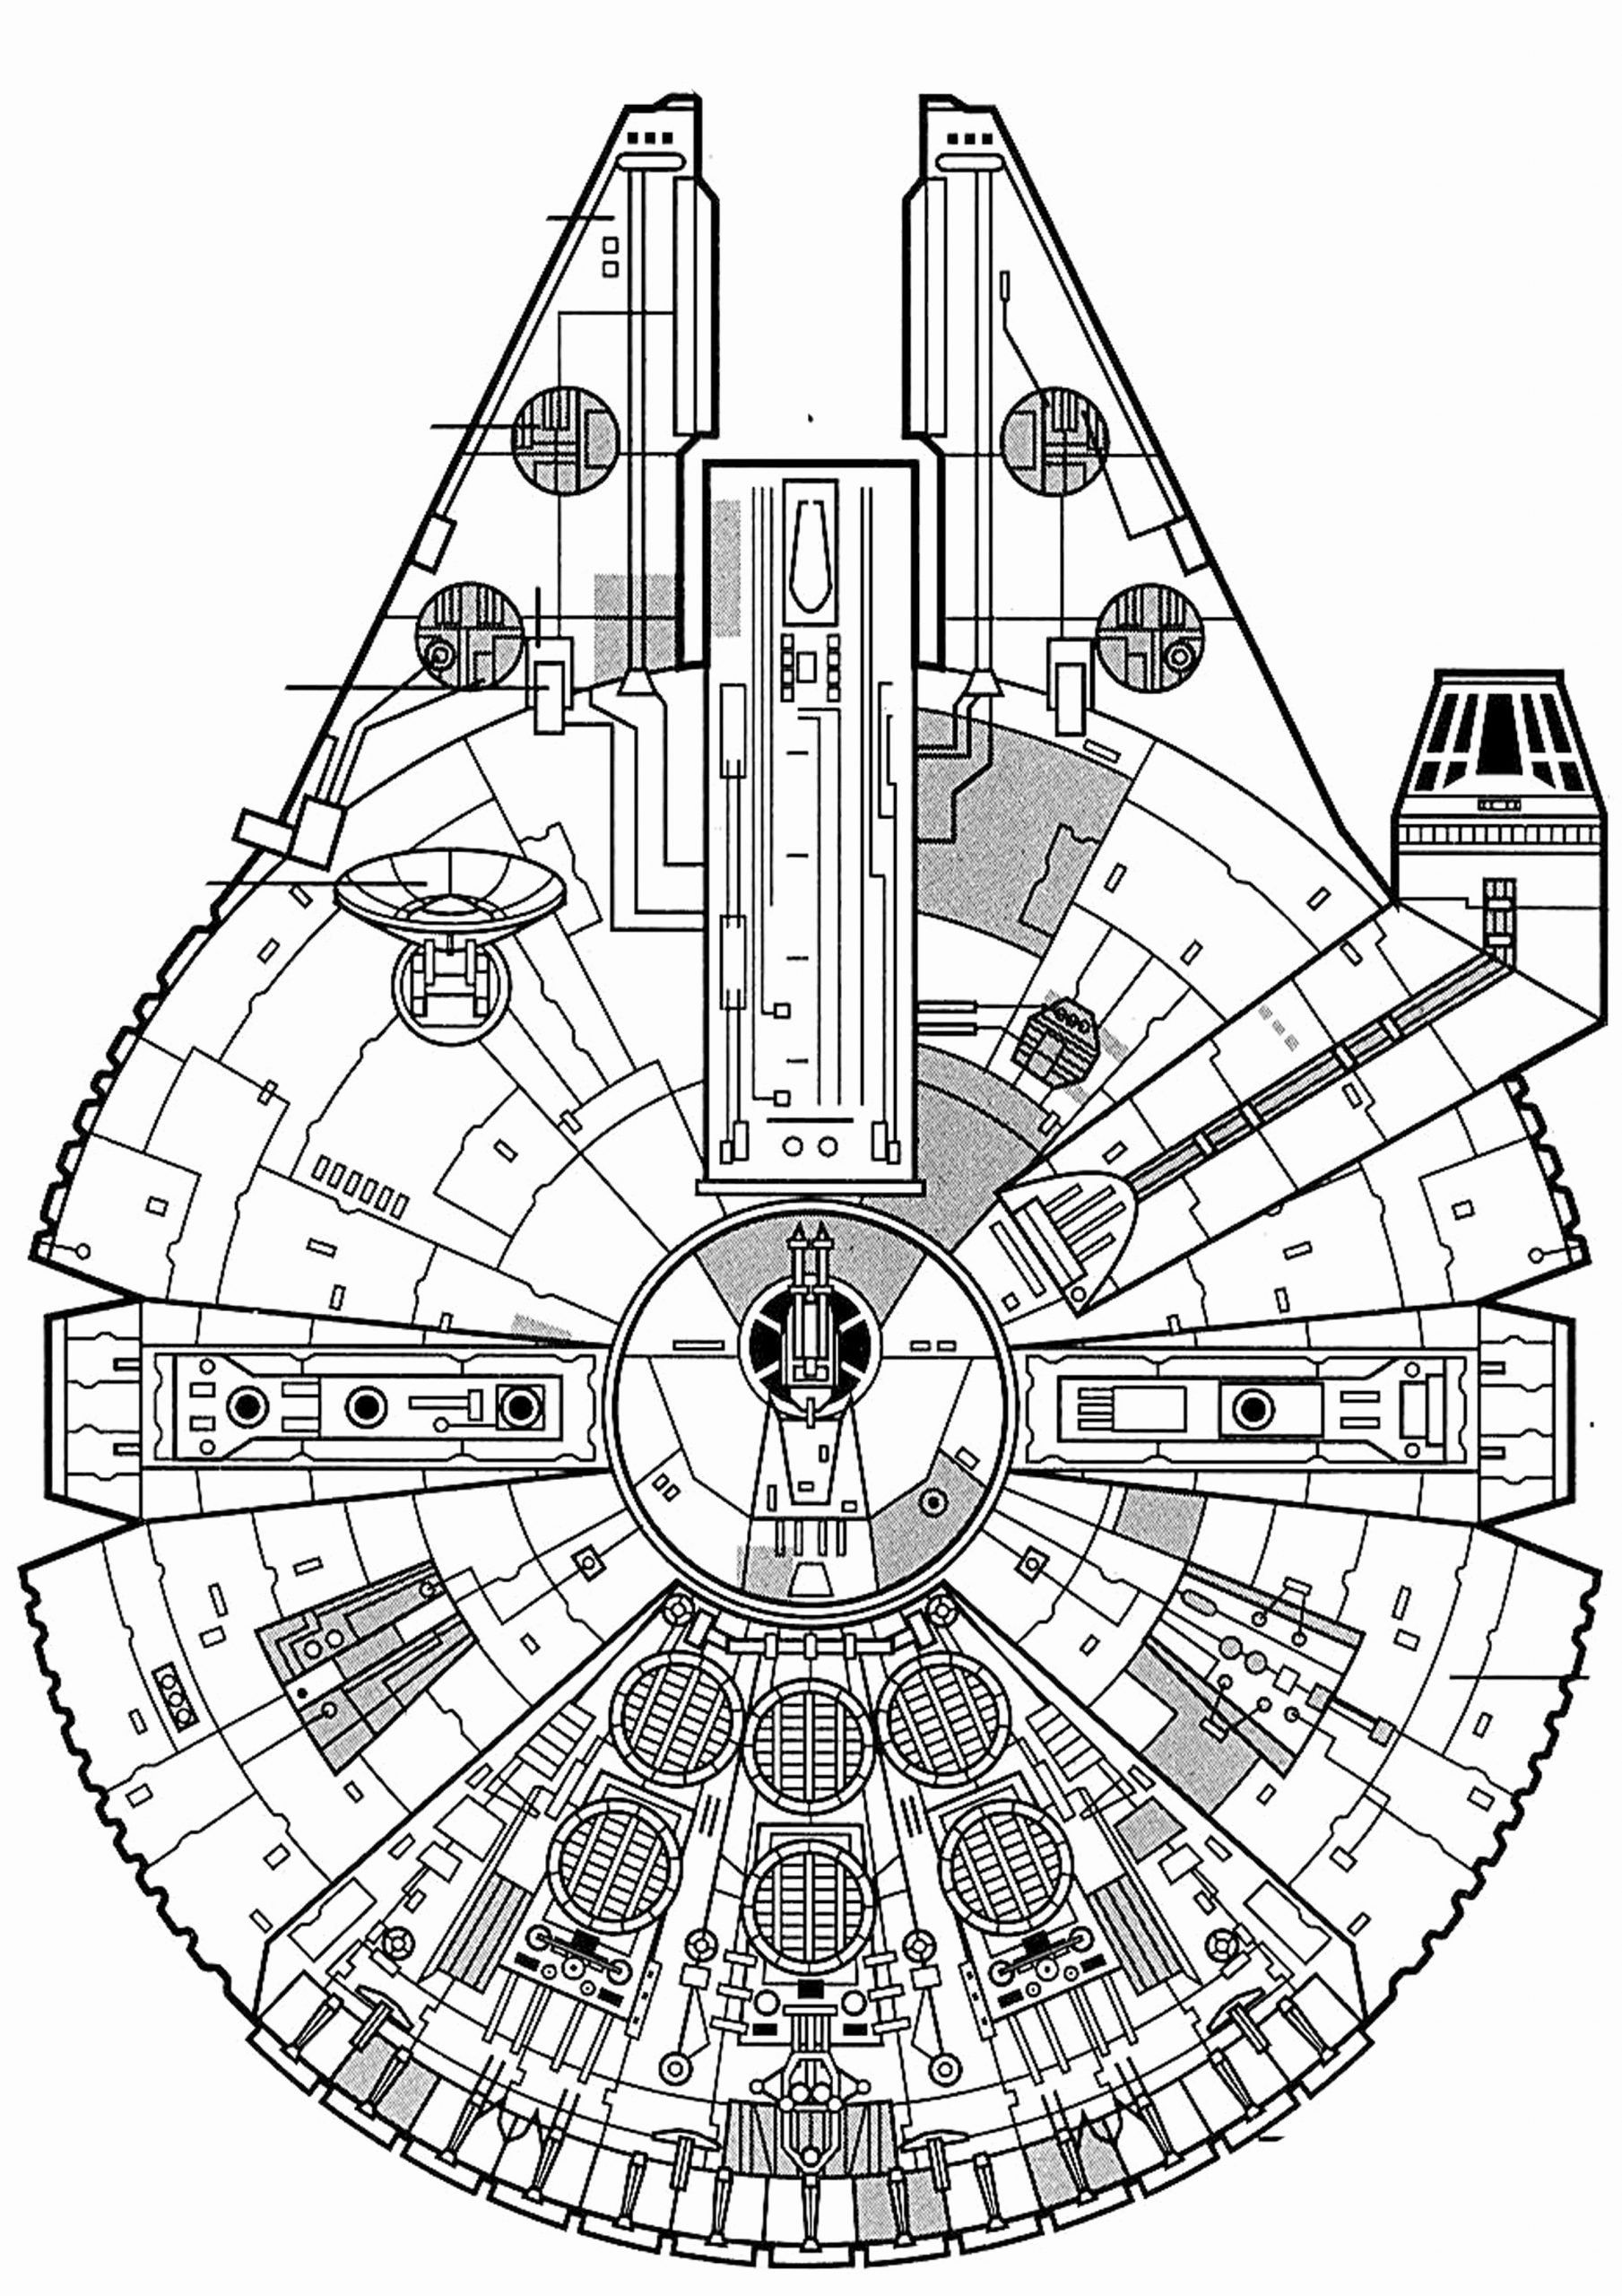 Millennium Falcon Coloring Page Inspirational Millenium Falcon Coloring Page At Getdrawings Star Wars Tattoo Millennium Falcon Lego Star Wars